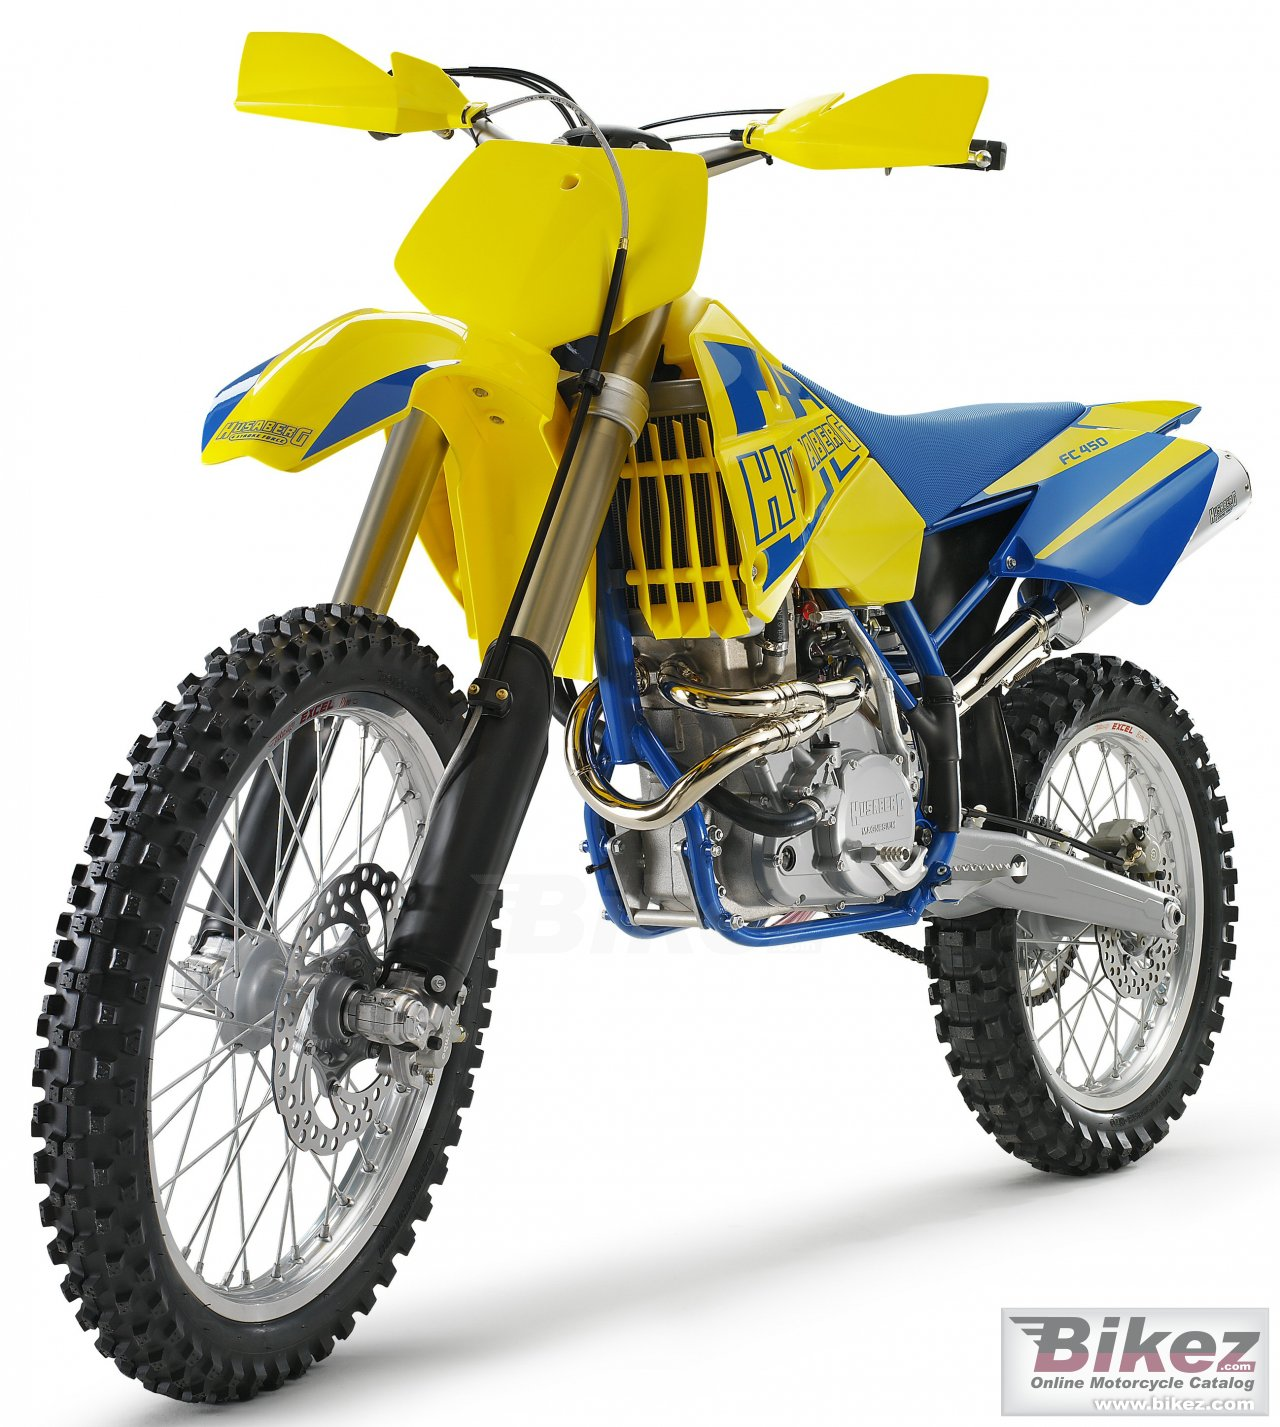 Big Husaberg fc 450 picture and wallpaper from Bikez.com